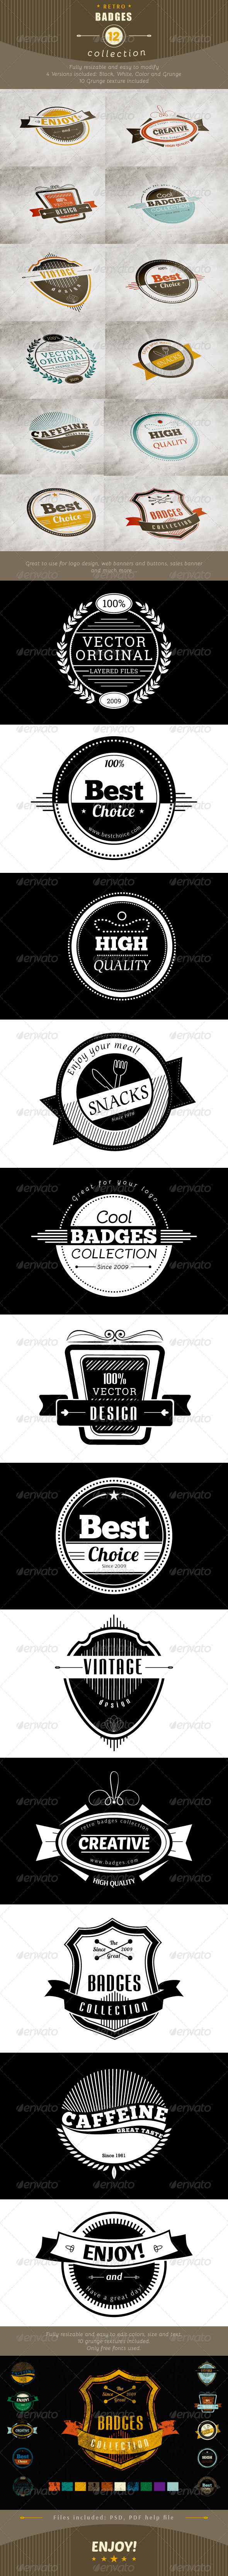 GraphicRiver 12 Retro and Vintage Badges 6356910